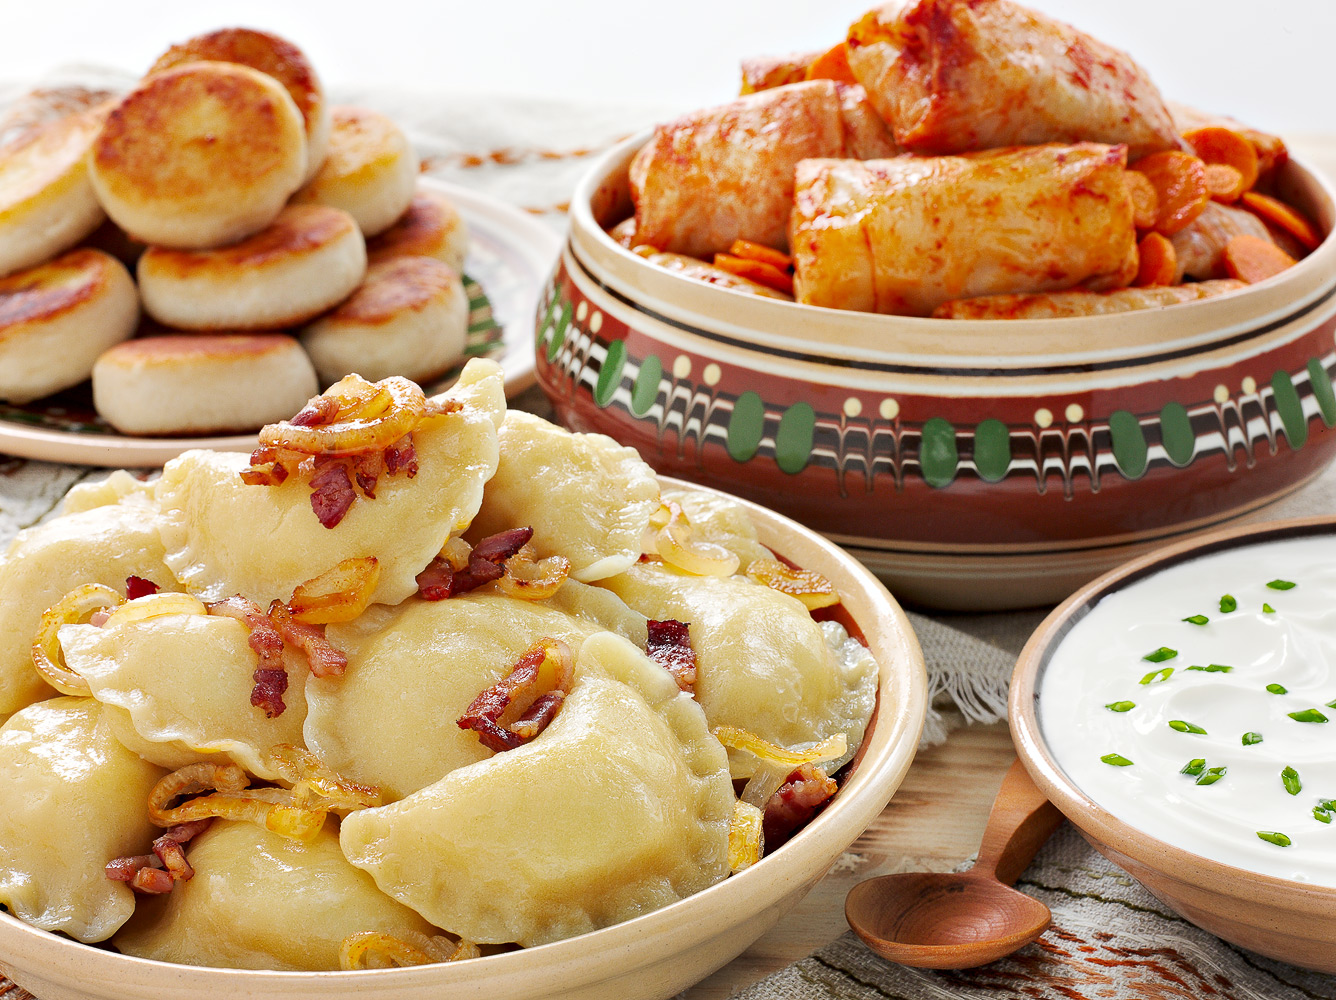 Lenten snacks on the festive table - 7 simple and delicious recipes 48